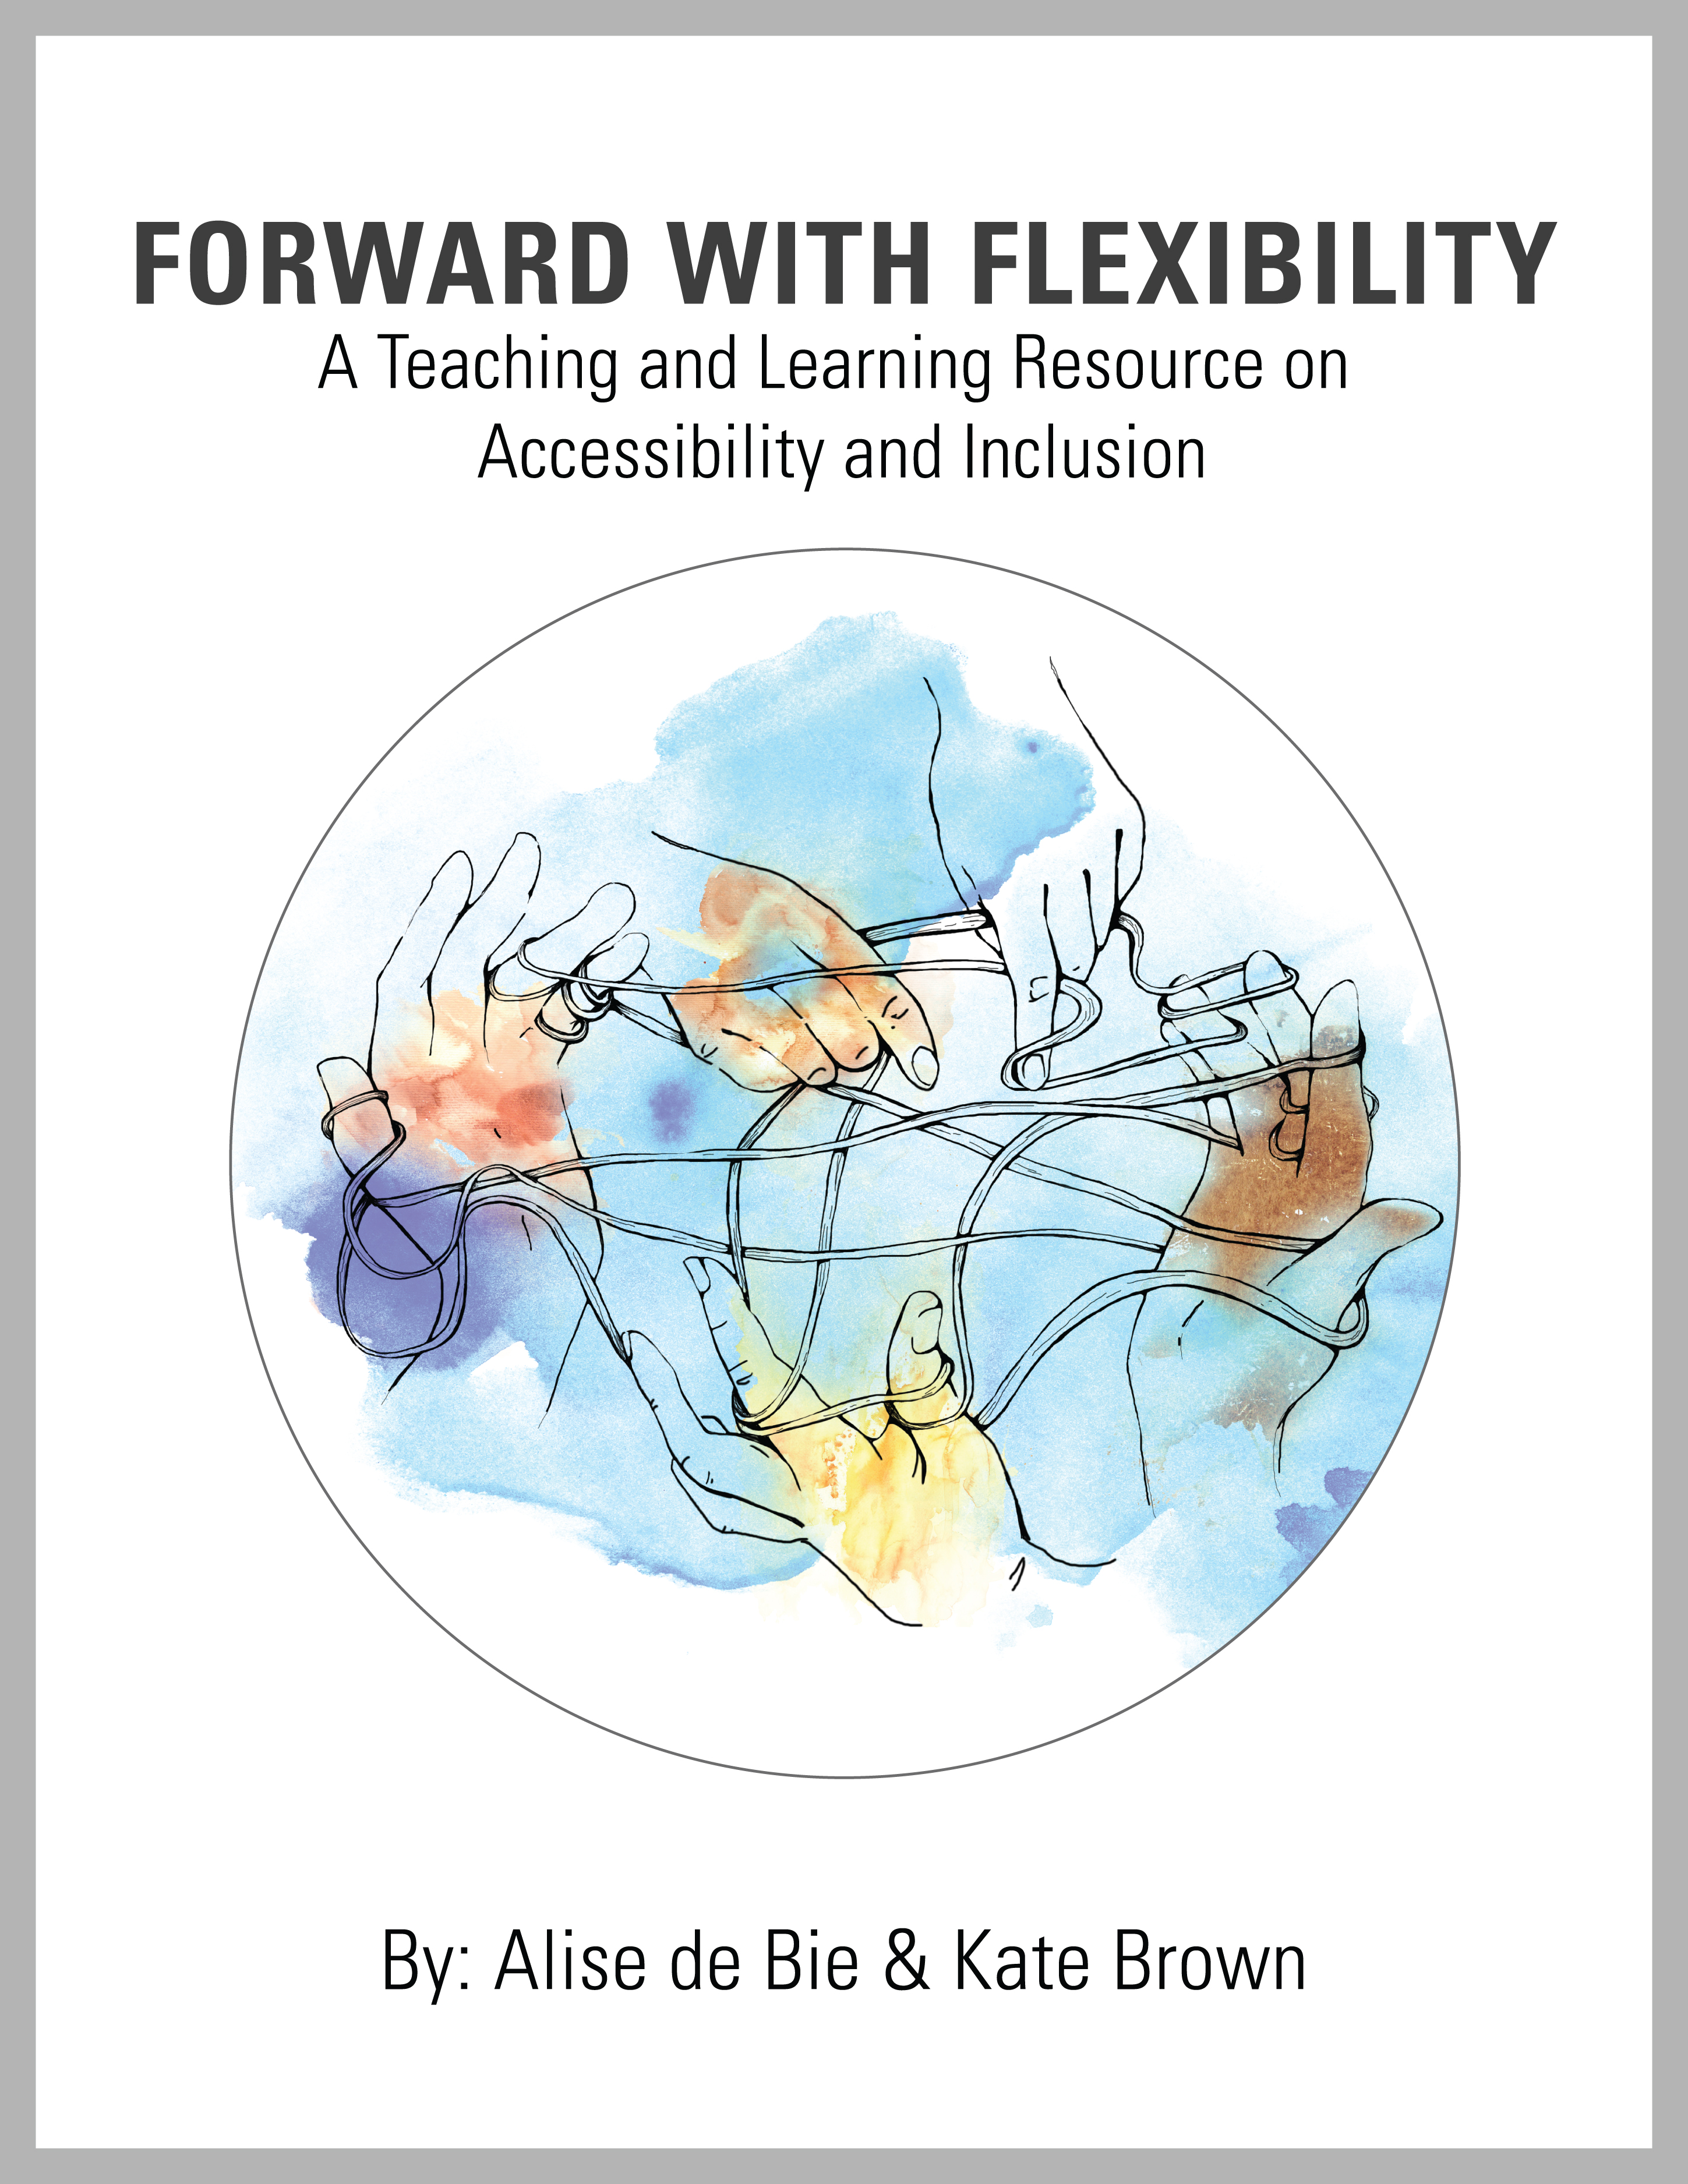 Forward With Flexibility: A Teaching and Learning Resource on Accessibility and Inclusion by Alise de Bie and Kate Brown